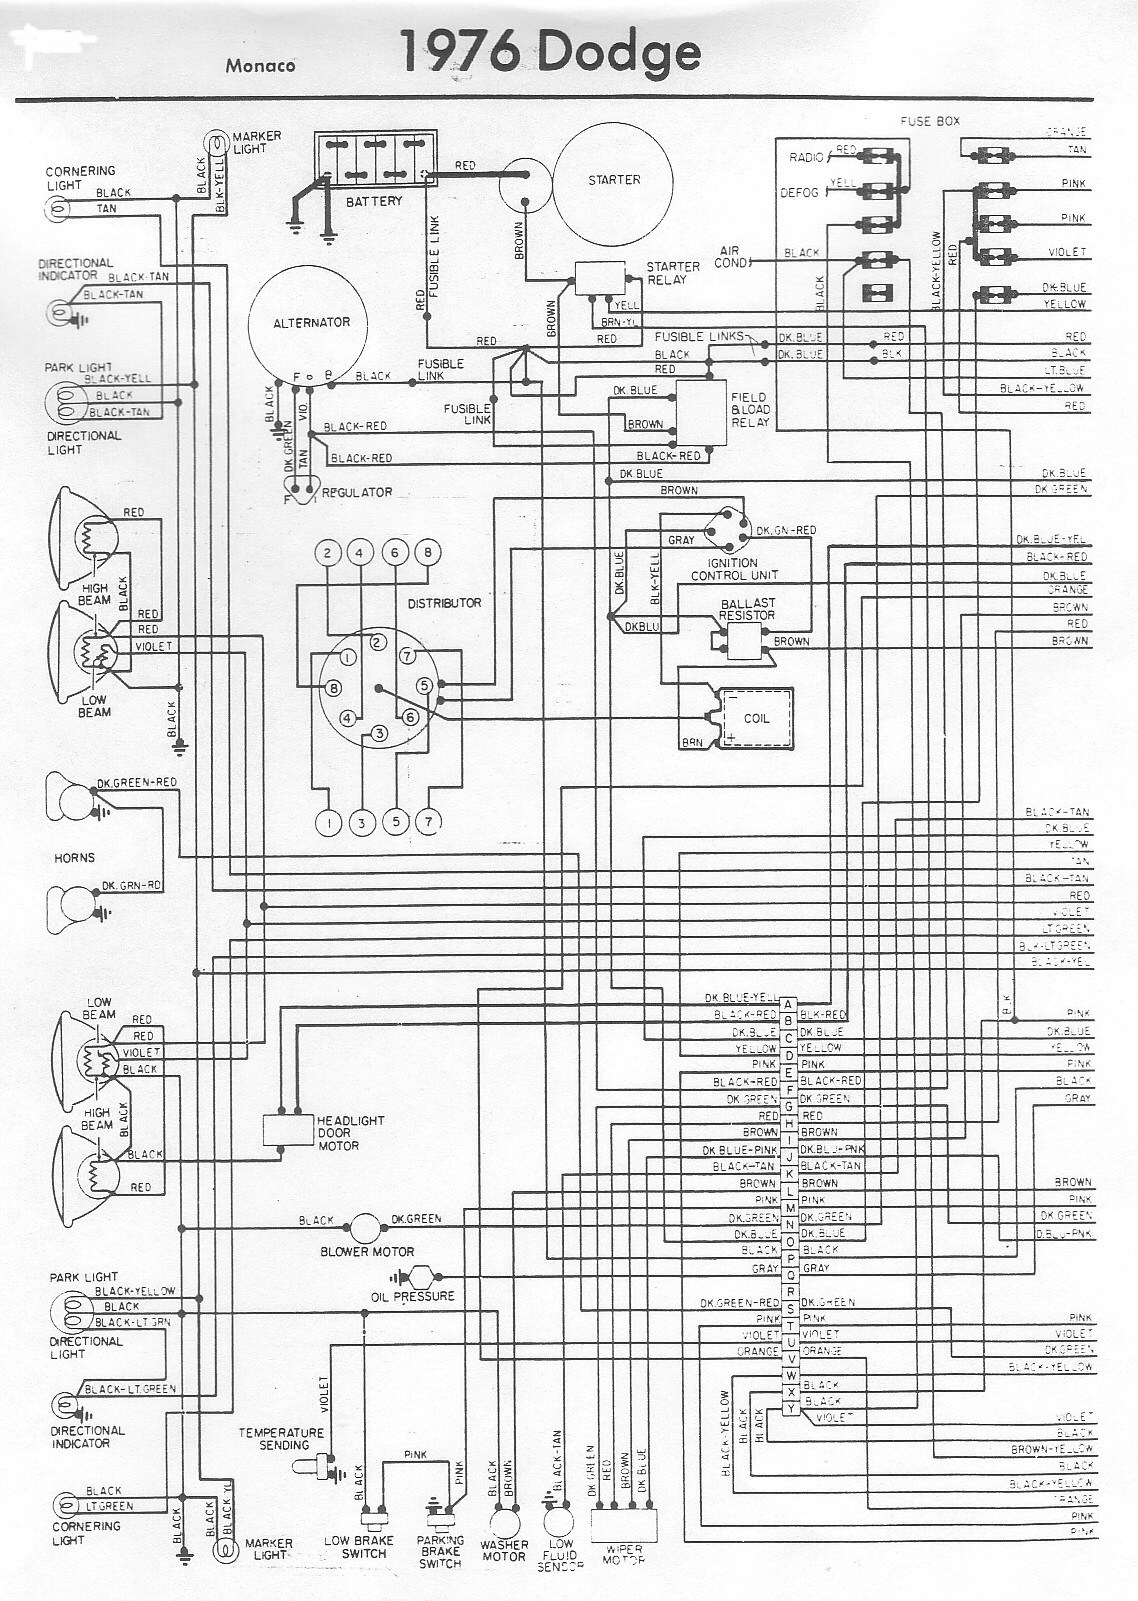 [FPWZ_2684]  78 Dodge Wiring Diagram - Tempstar Heat Pump Wiring Diagram Style Ph5542  for Wiring Diagram Schematics | 78 Dodge Ignition Switch Wiring |  | Wiring Diagram Schematics